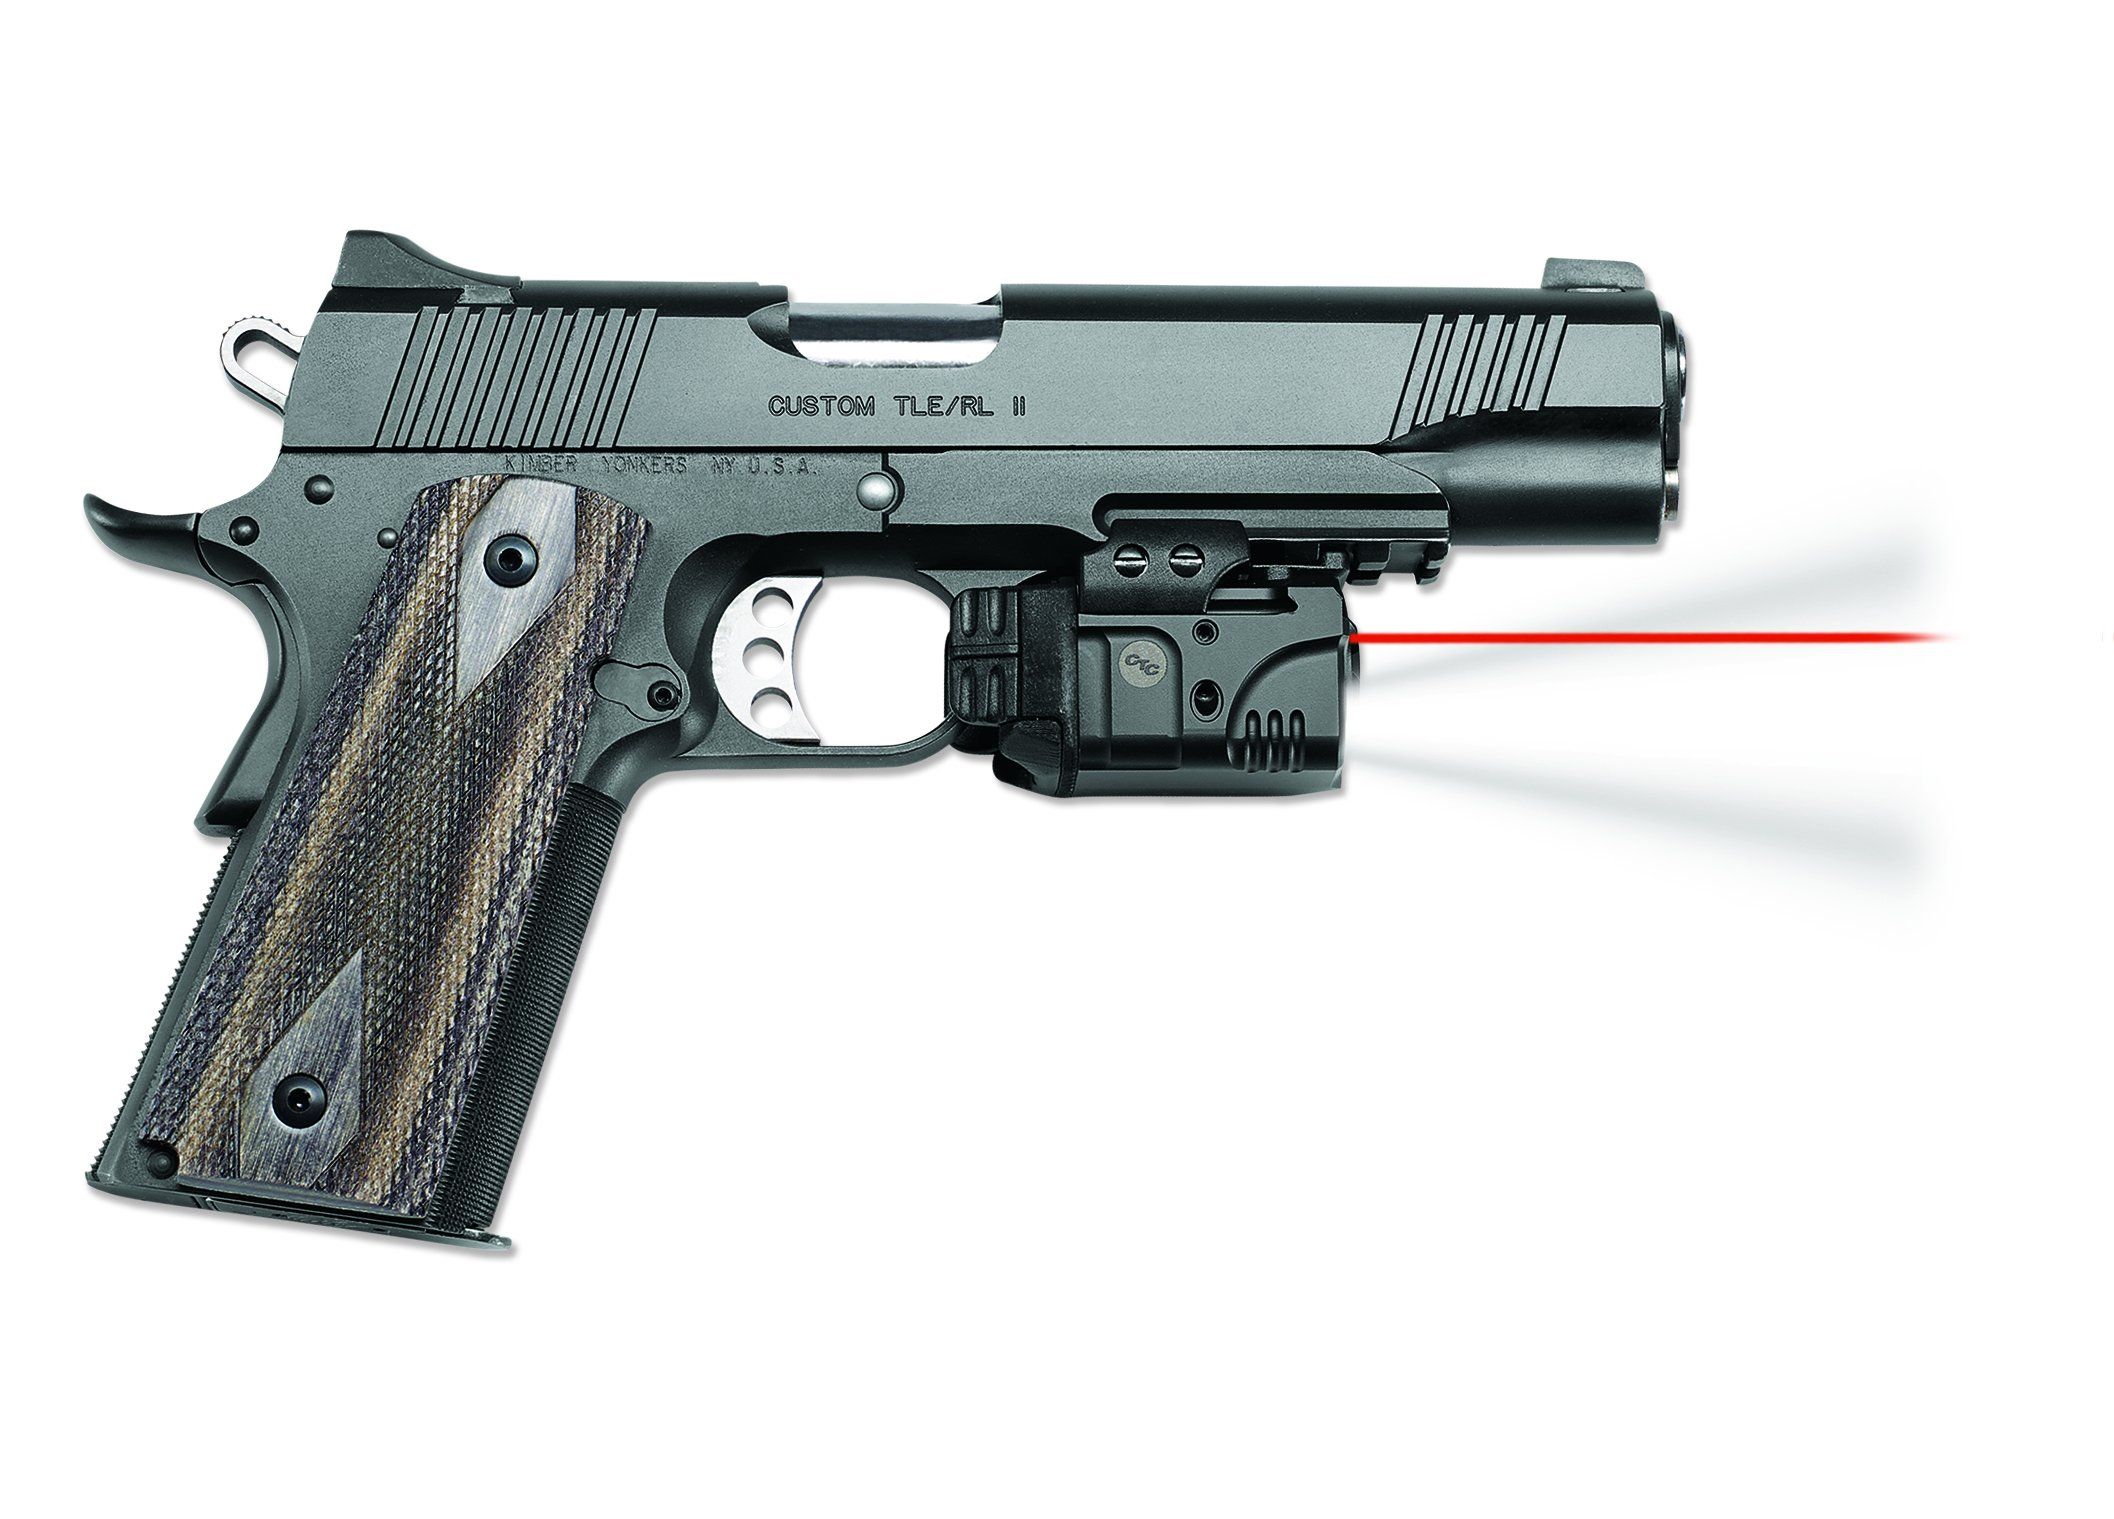 Crimson Trace CMR-205 Rail Master Pro Universal Red Laser Sight + Tactical Light by Crimson Trace (Image #5)